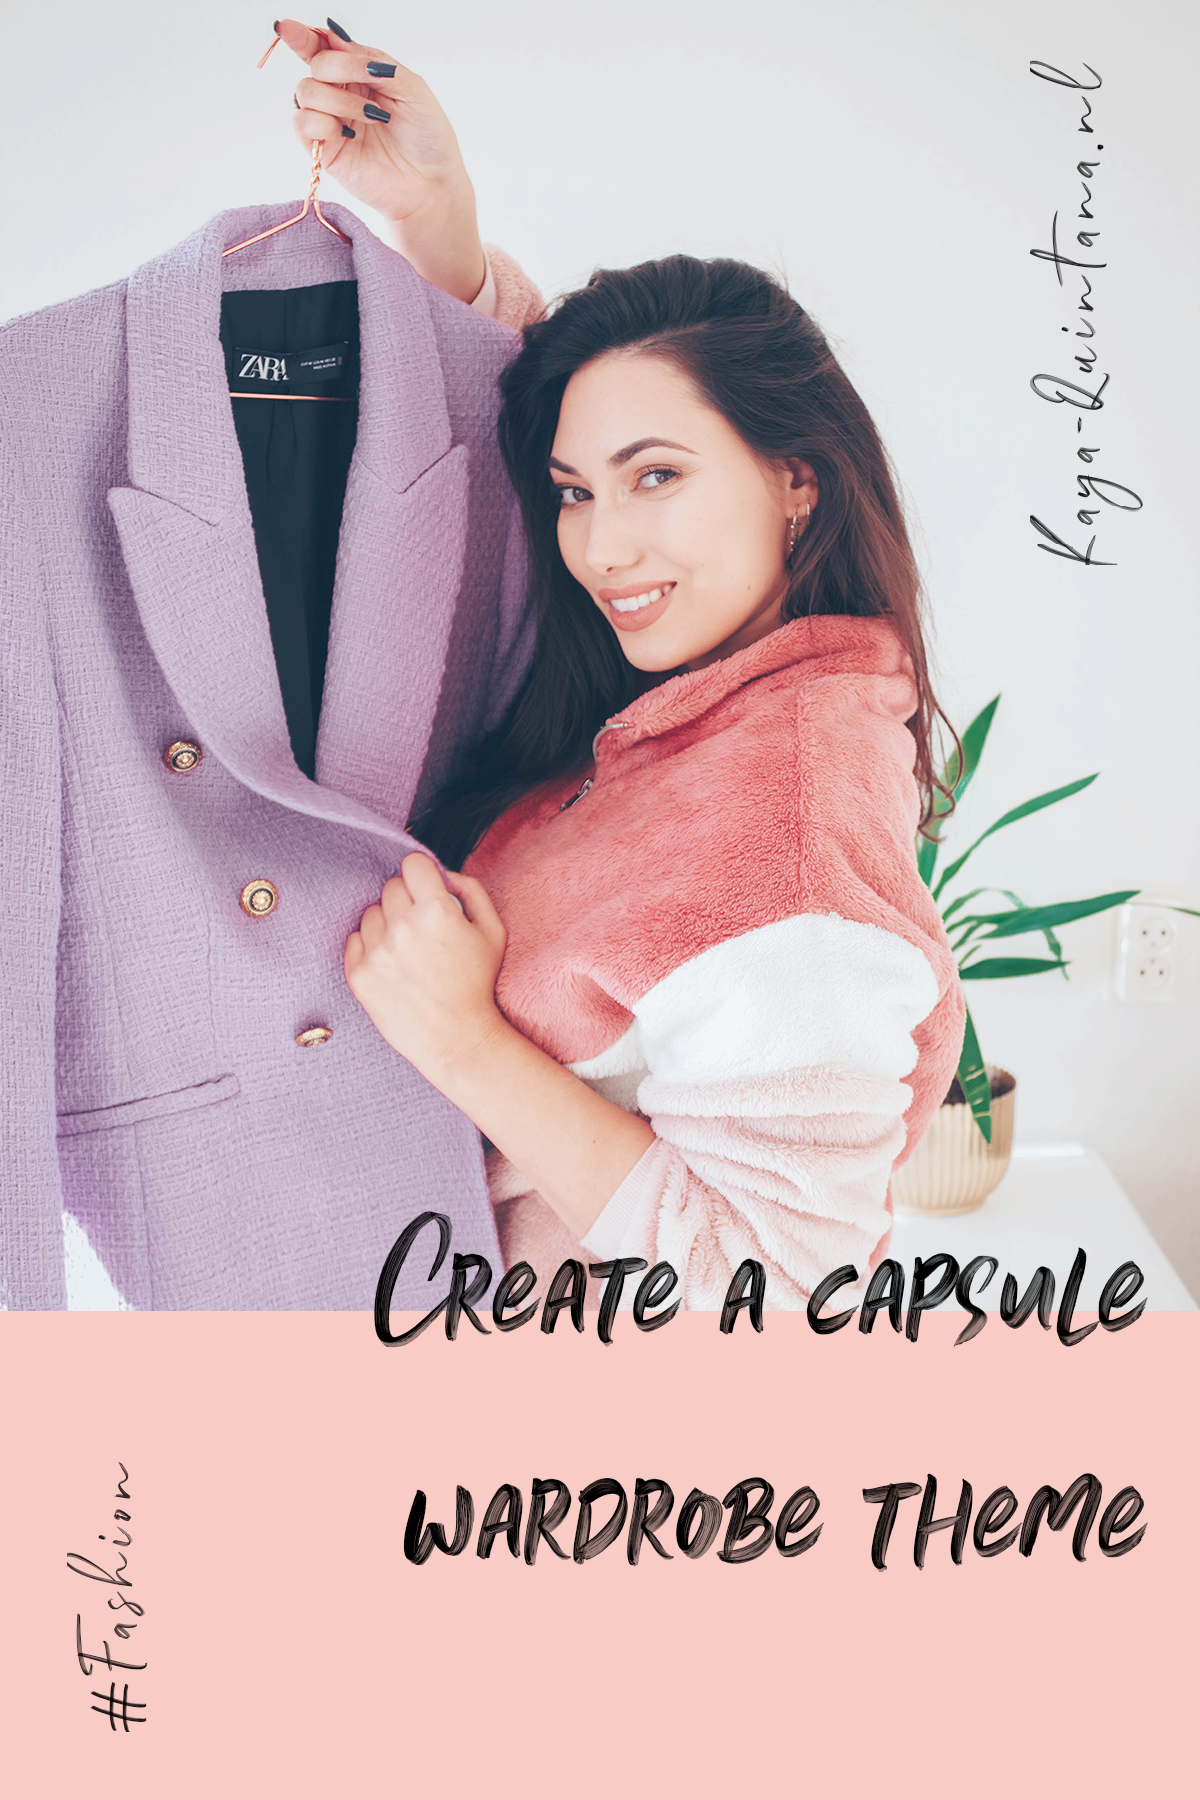 How to create a capsule wardrobe theme